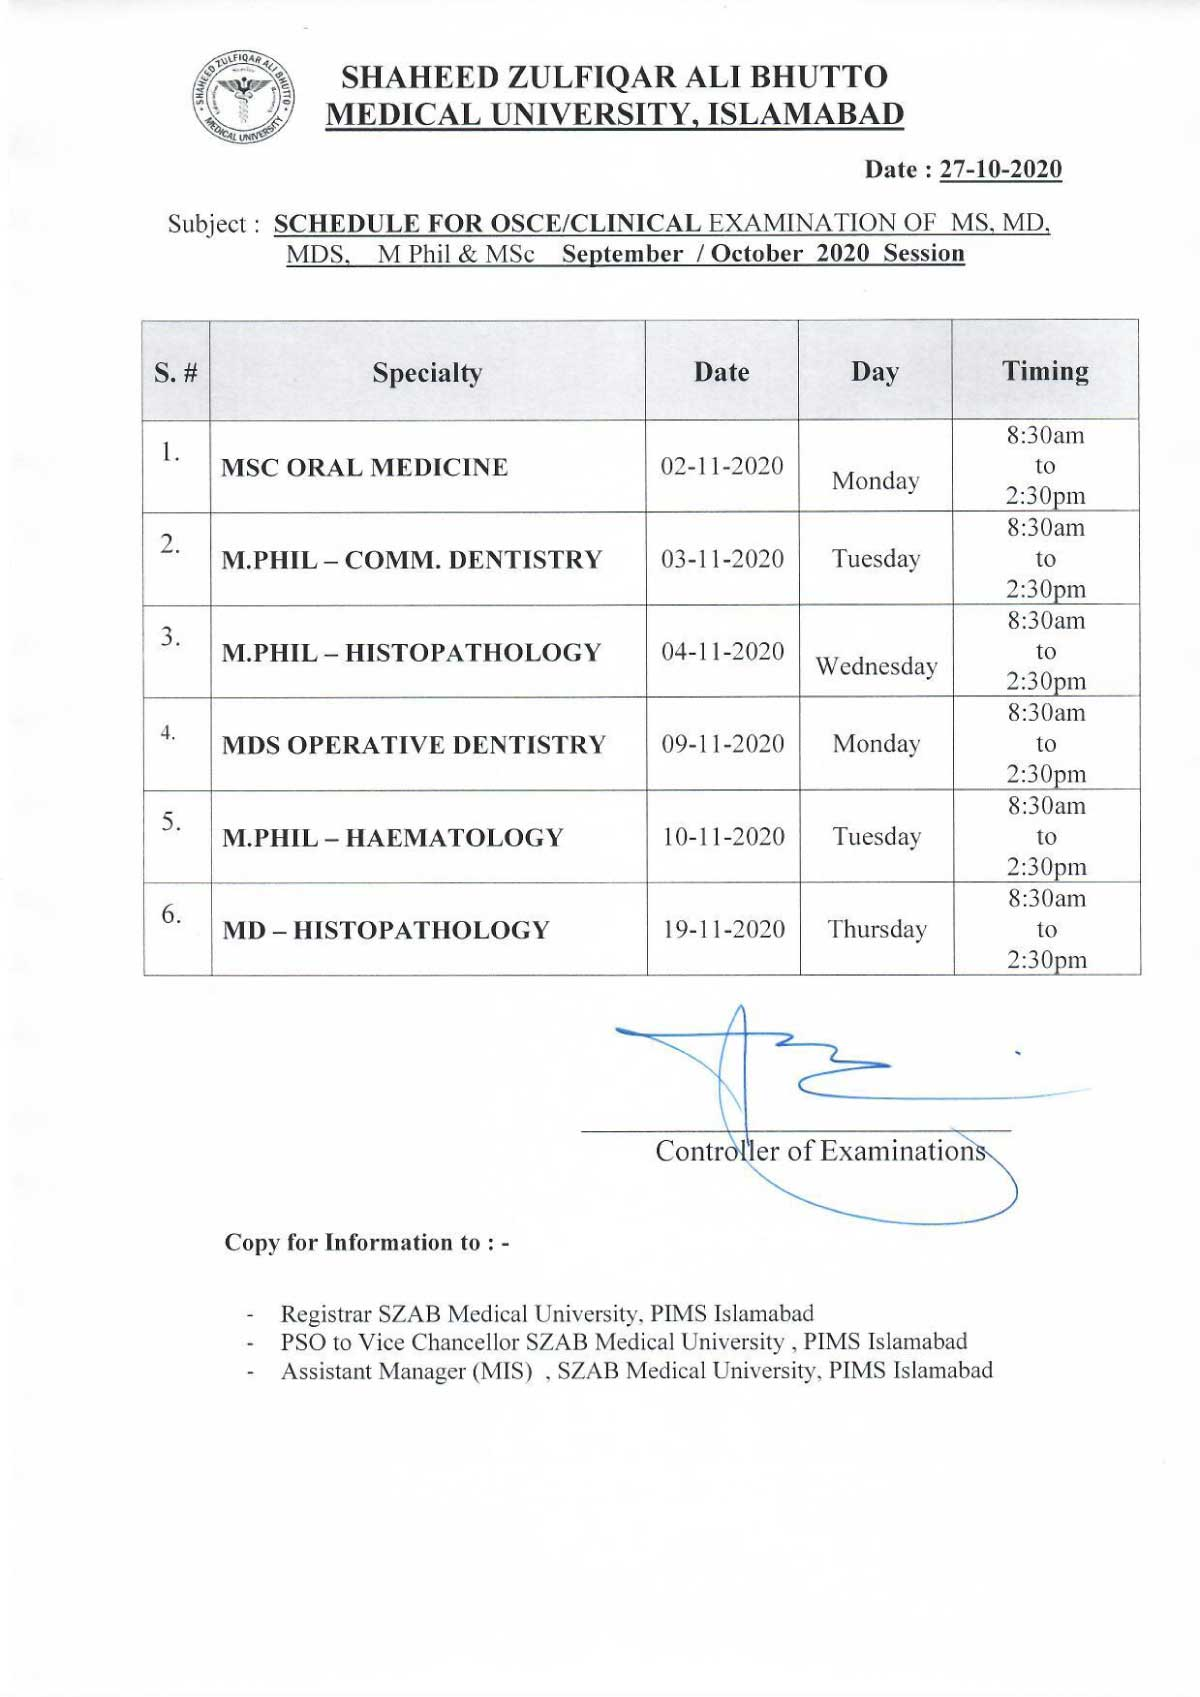 Schedule of Clinical Examination for MS,MD,MDS,M.Phil and MSc exam September /October 2020